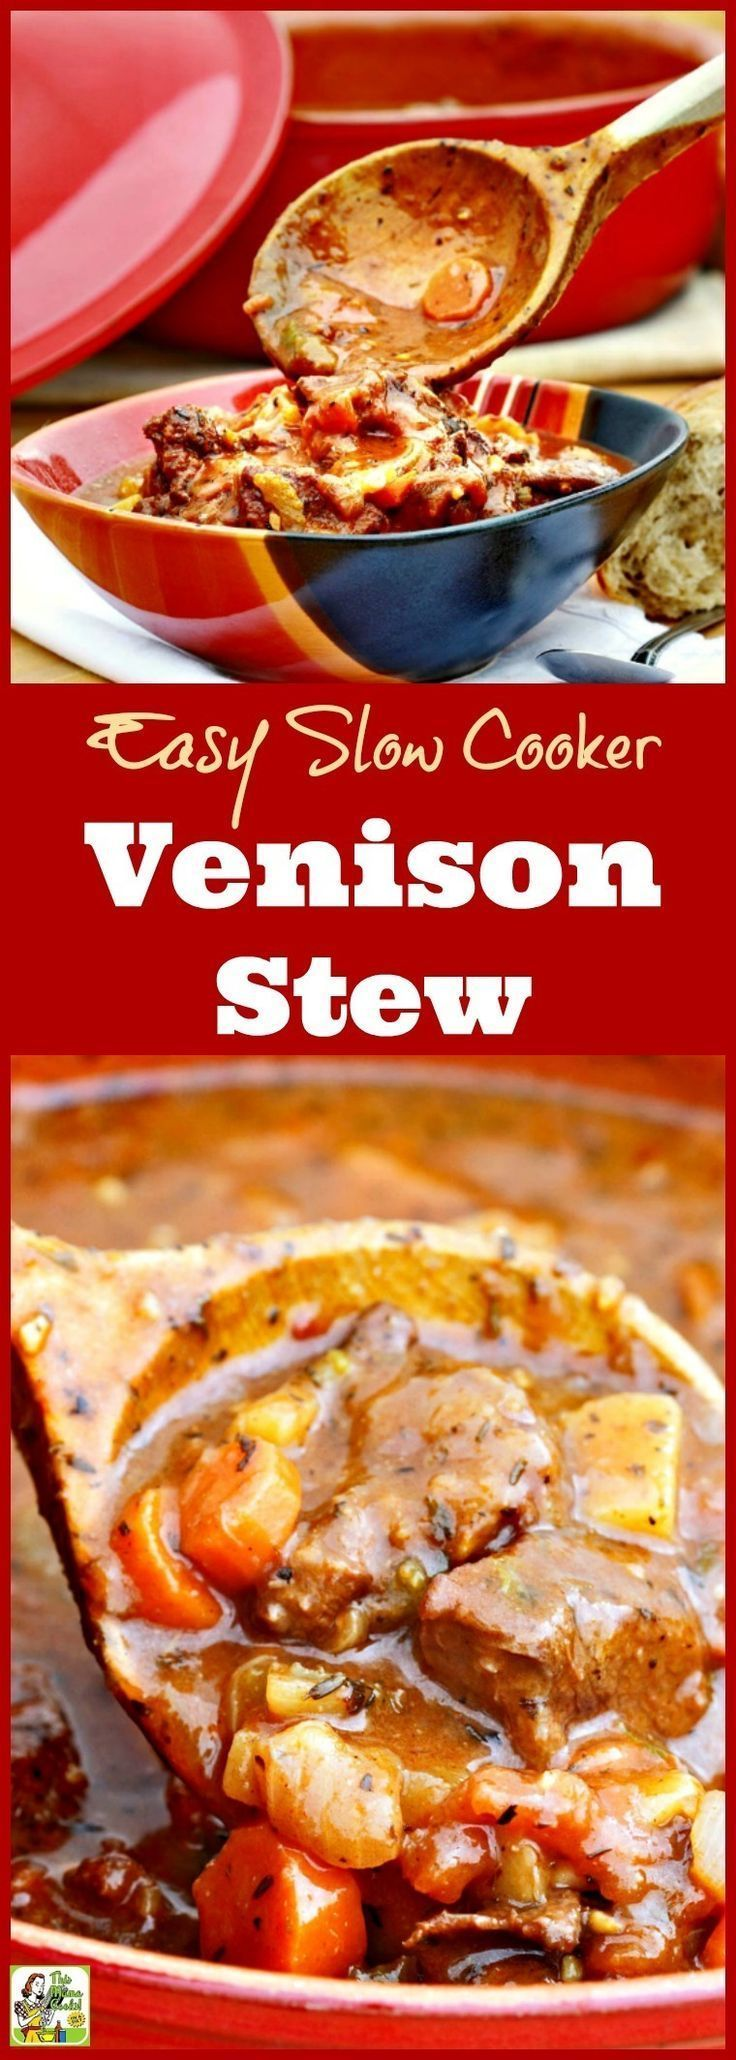 Got venison? Click here to get this Easy Slow Cooker Venison Stew recipe! It's the best crock pot venison stew you'll find. This easy to make venison stew is gluten free and filled with vegetables.